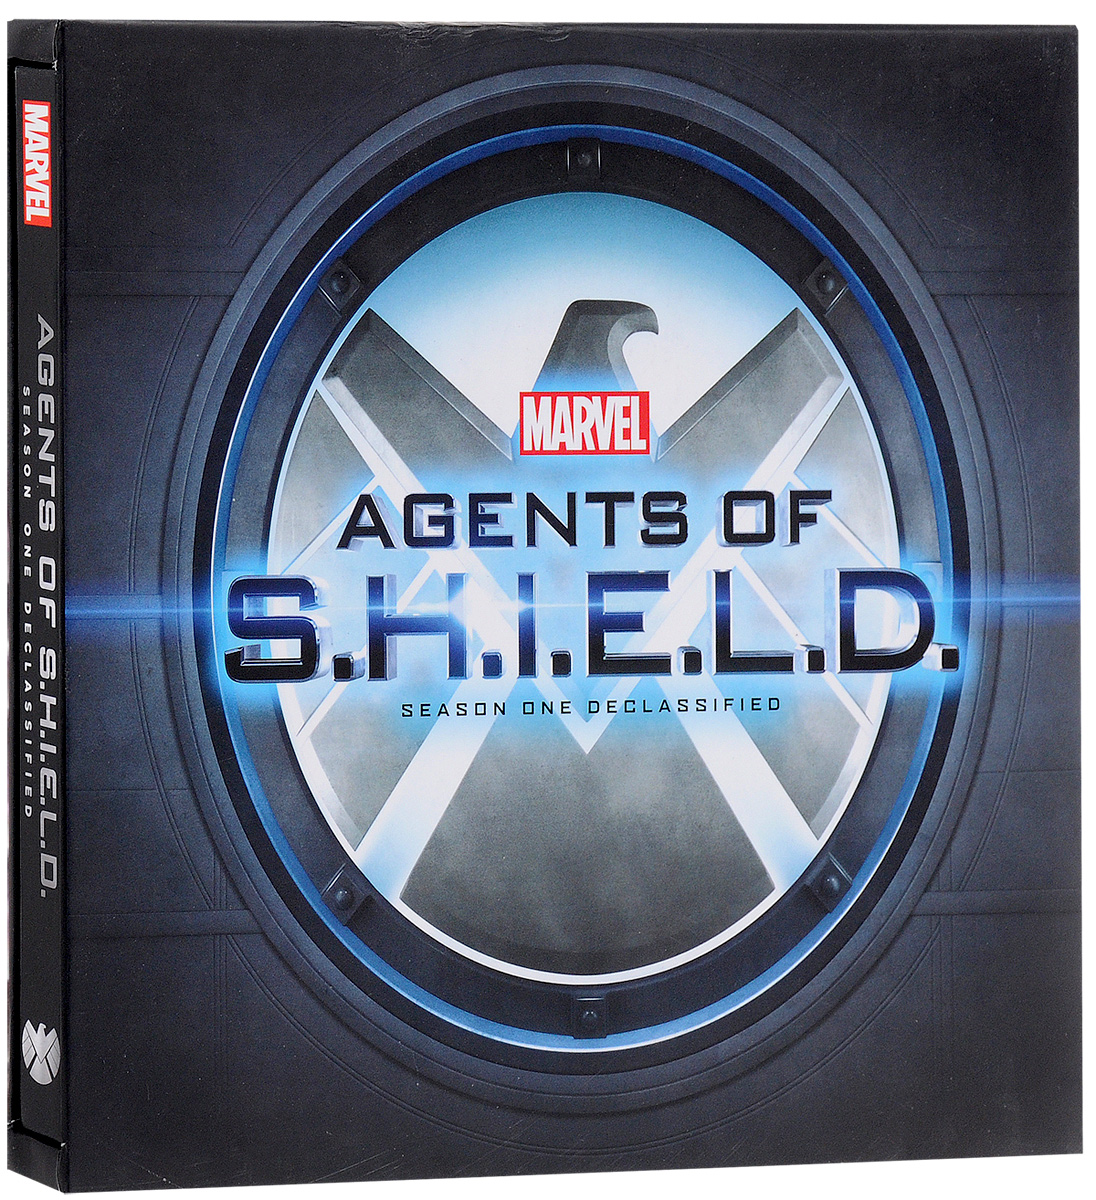 Marvels Agents of S.H.I.E.L.D.: Season One Declassified